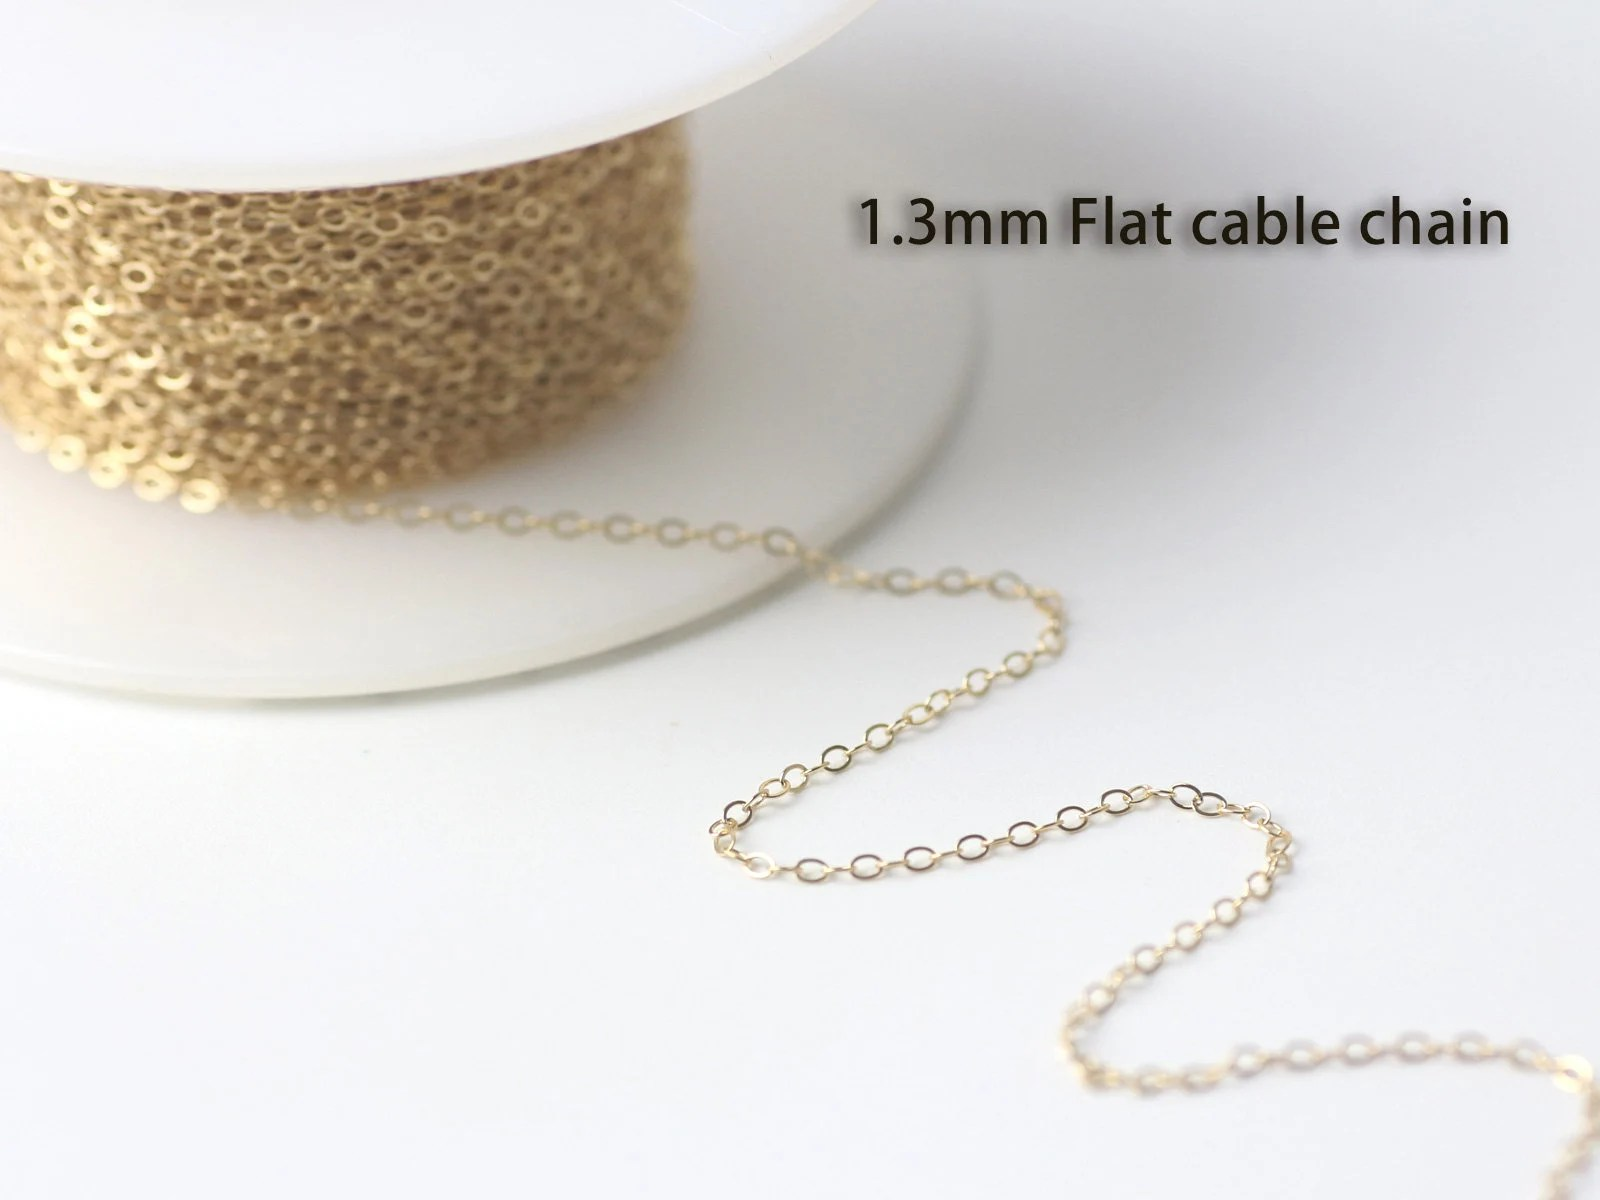 Wholesale Jewelry Gold Filled 14k Gold Filled 1 3mm Flat Cable Chain 5ft 20ft 100ft 1 3x1 8mm Chain Usa Made Wholesale Jewelry Chain Supply 1120